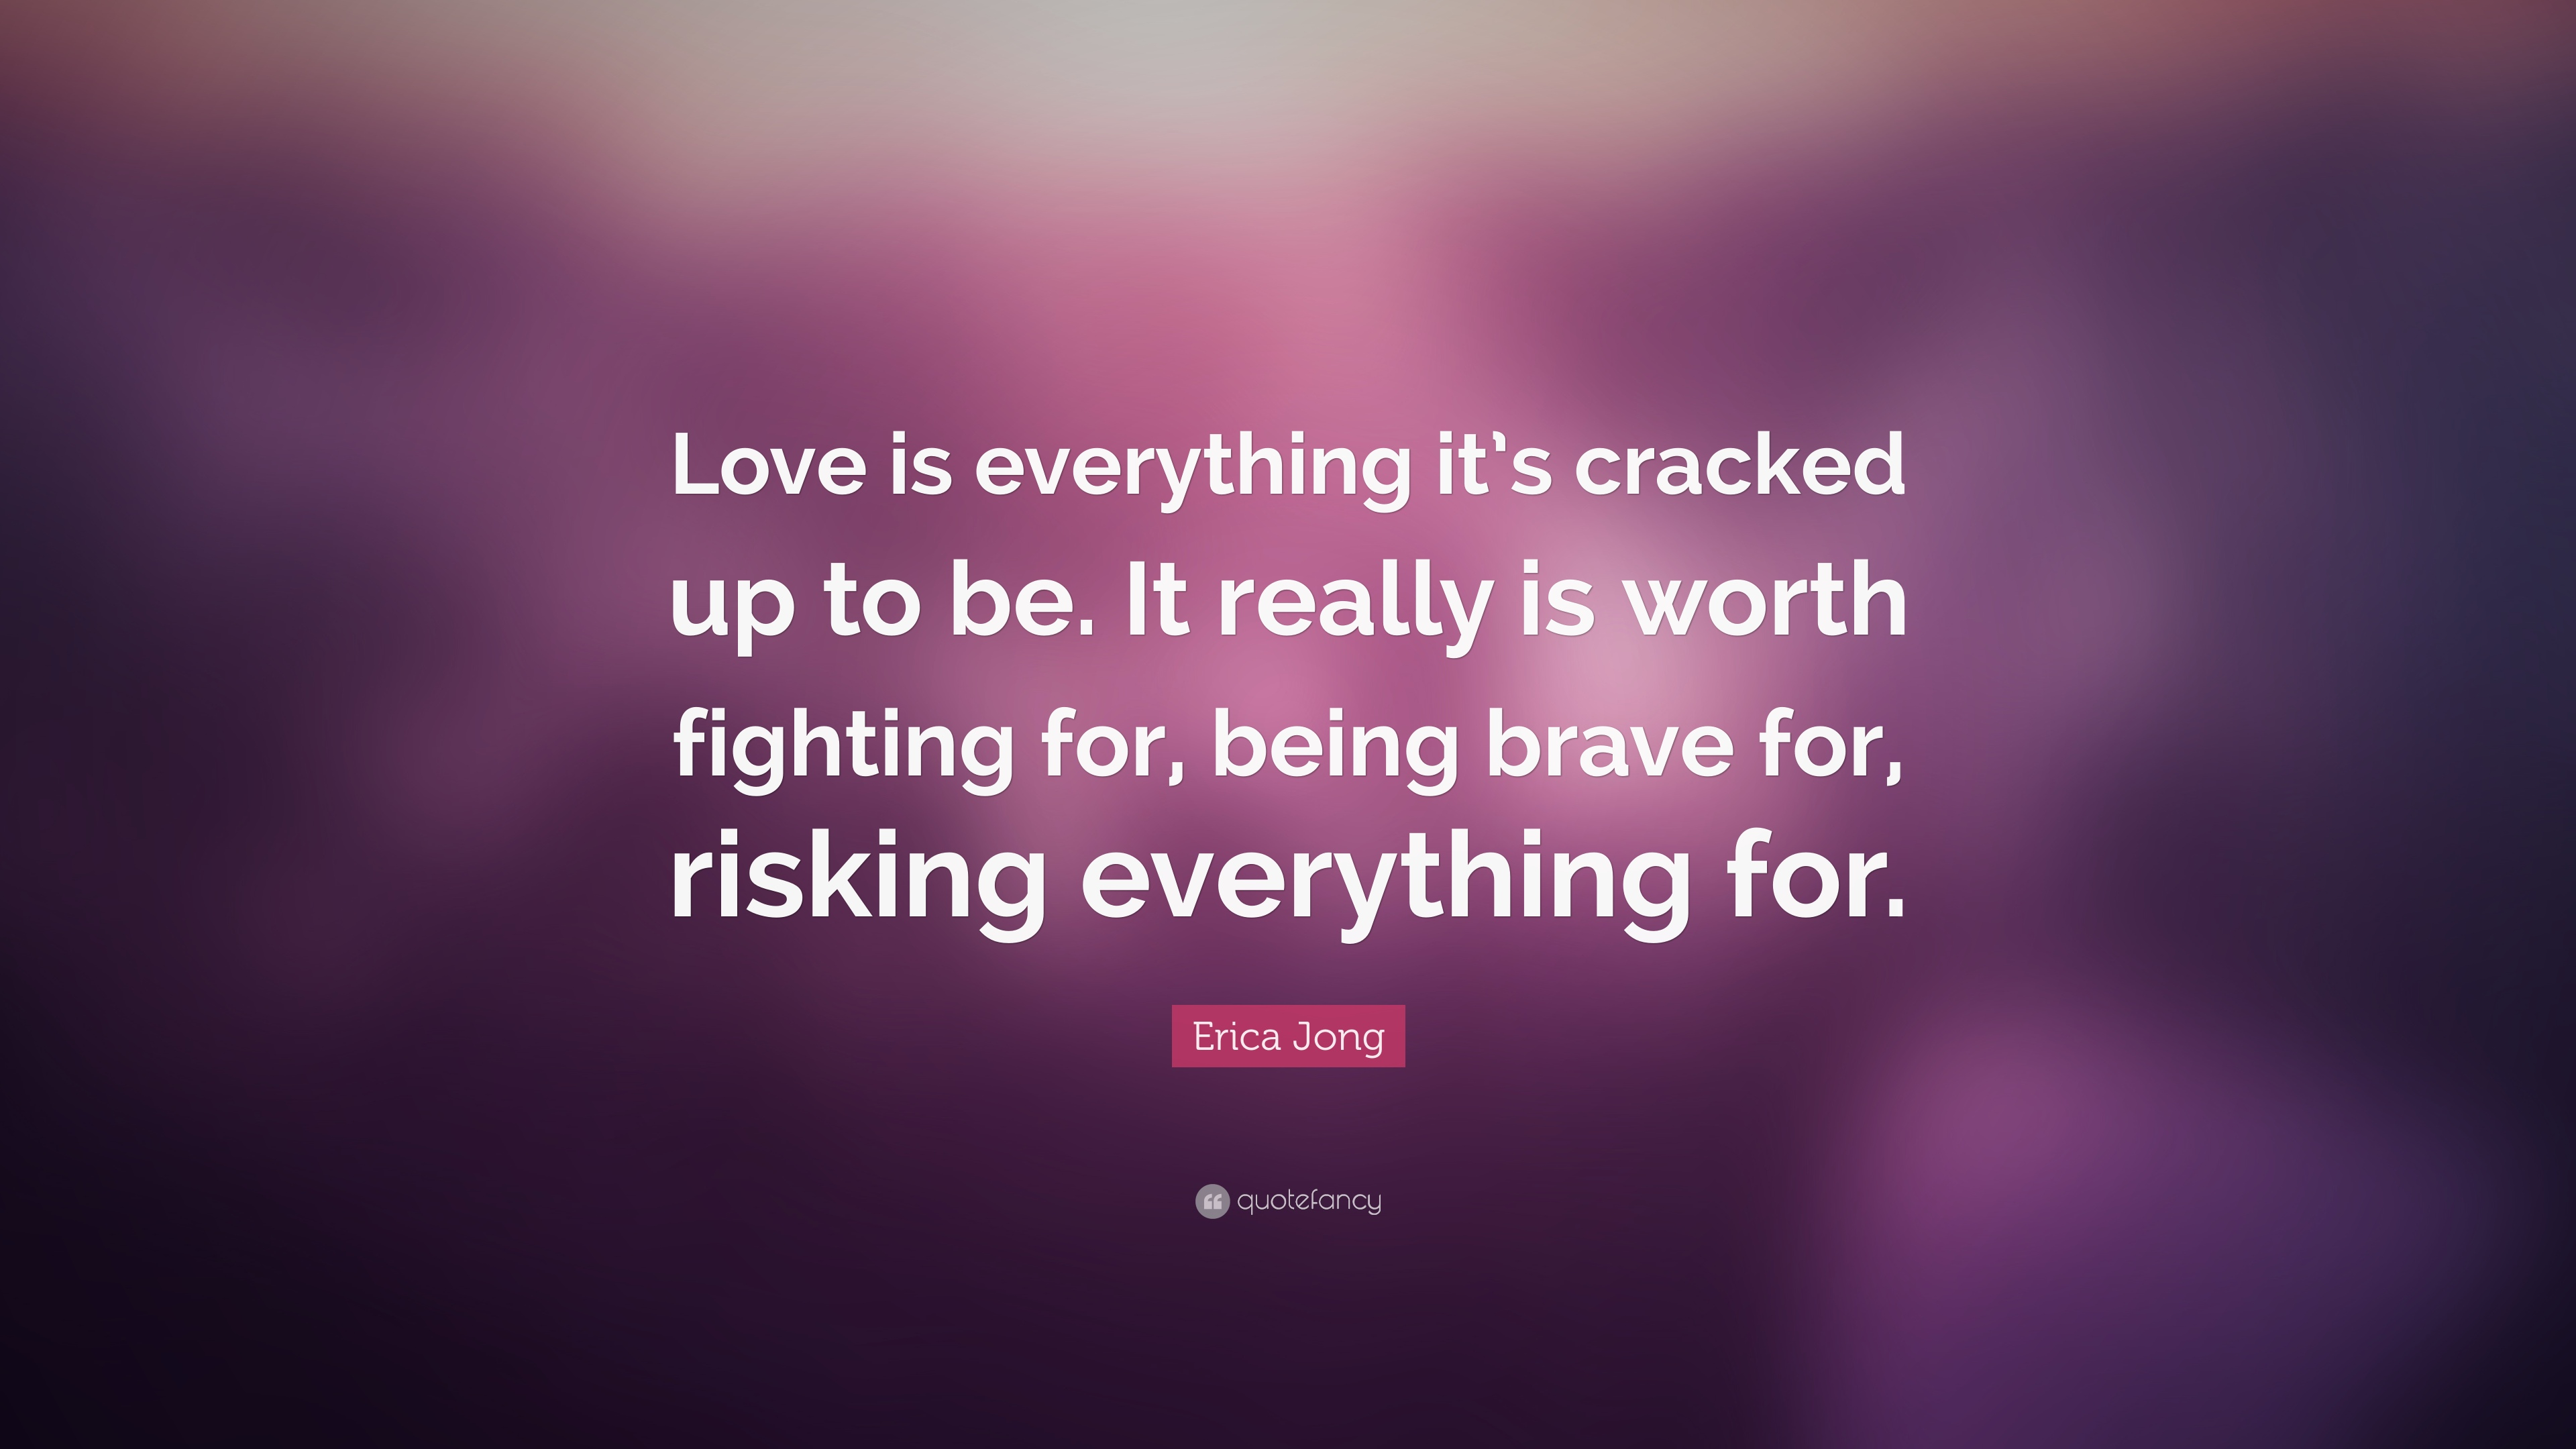 """bf2091d8d Erica Jong Quote: """"Love is everything it's cracked up to be. It really"""